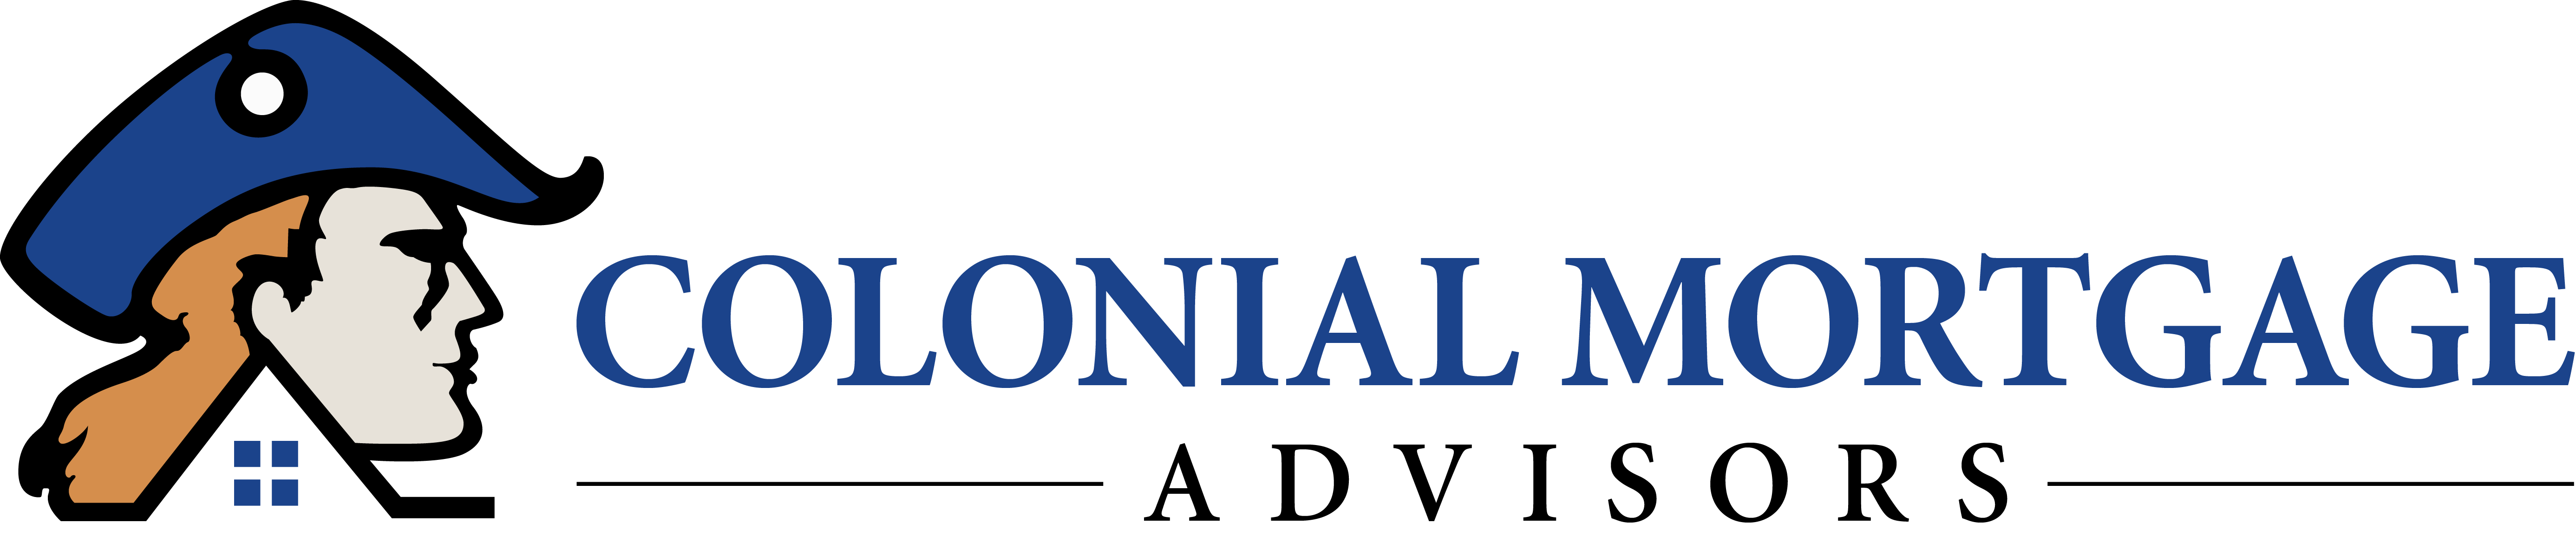 Colonial Mortgage Advisors logo